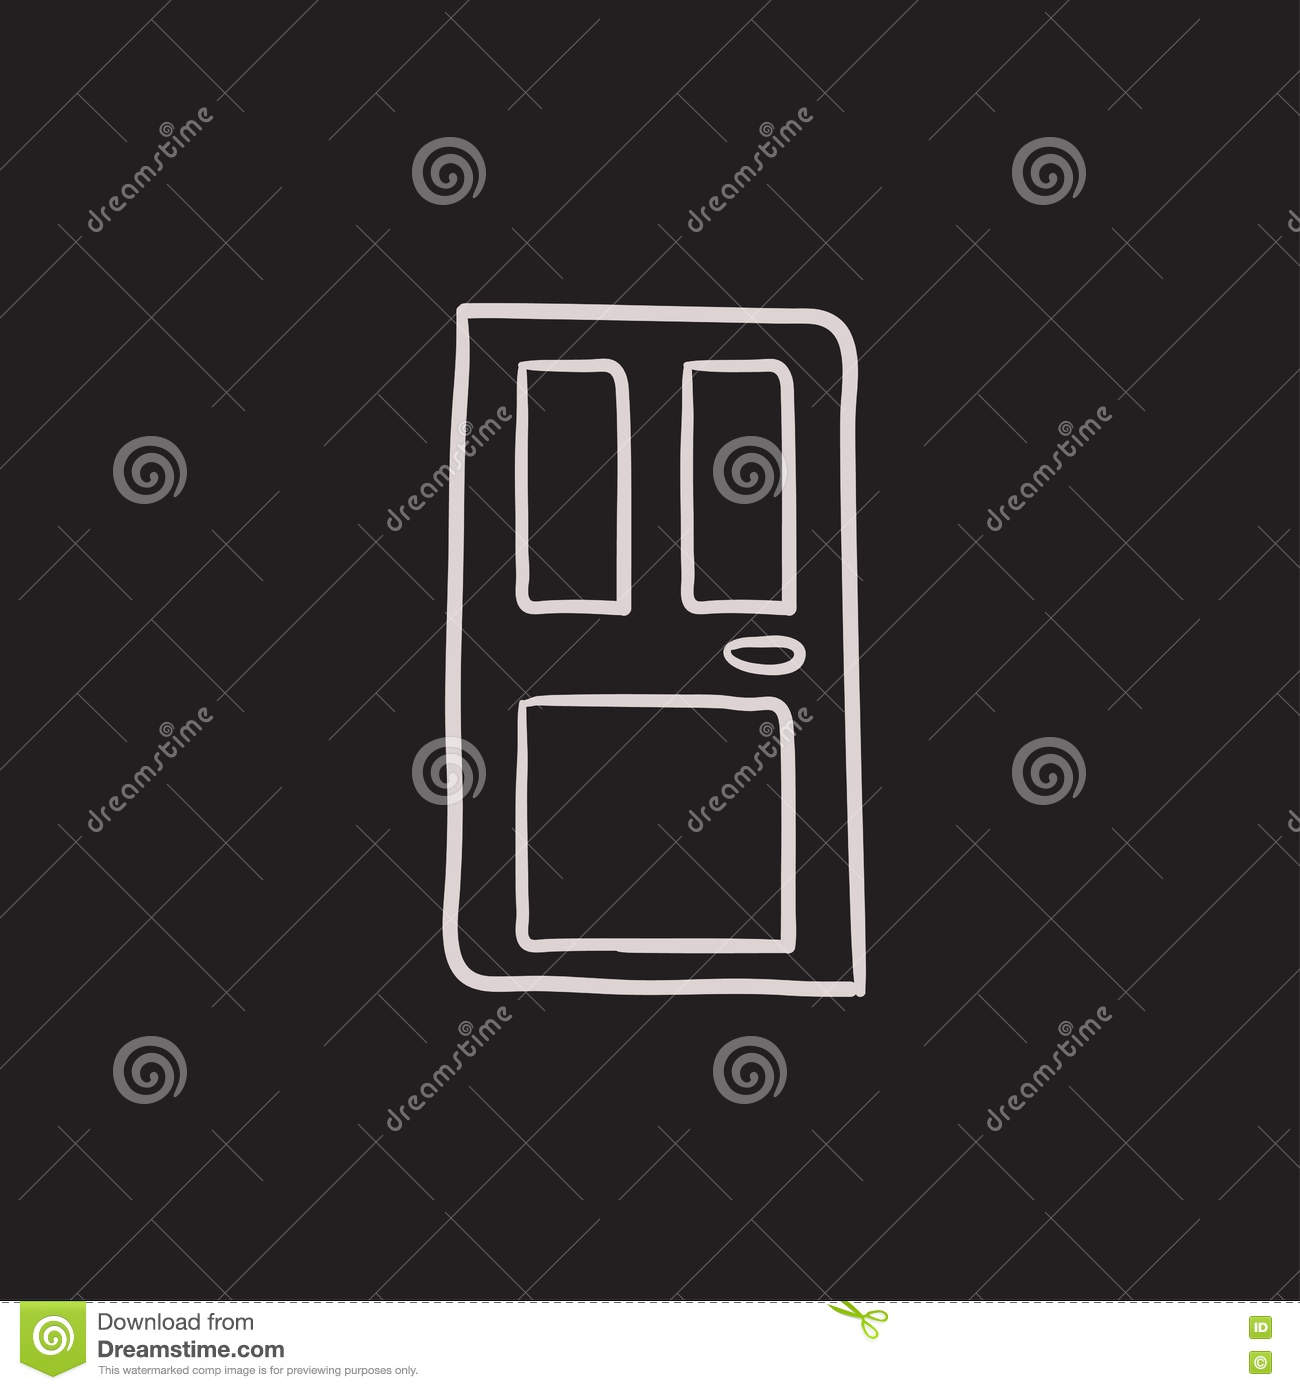 Front Door Sketch Icon Stock Vector Illustration Of Mobile 78163424